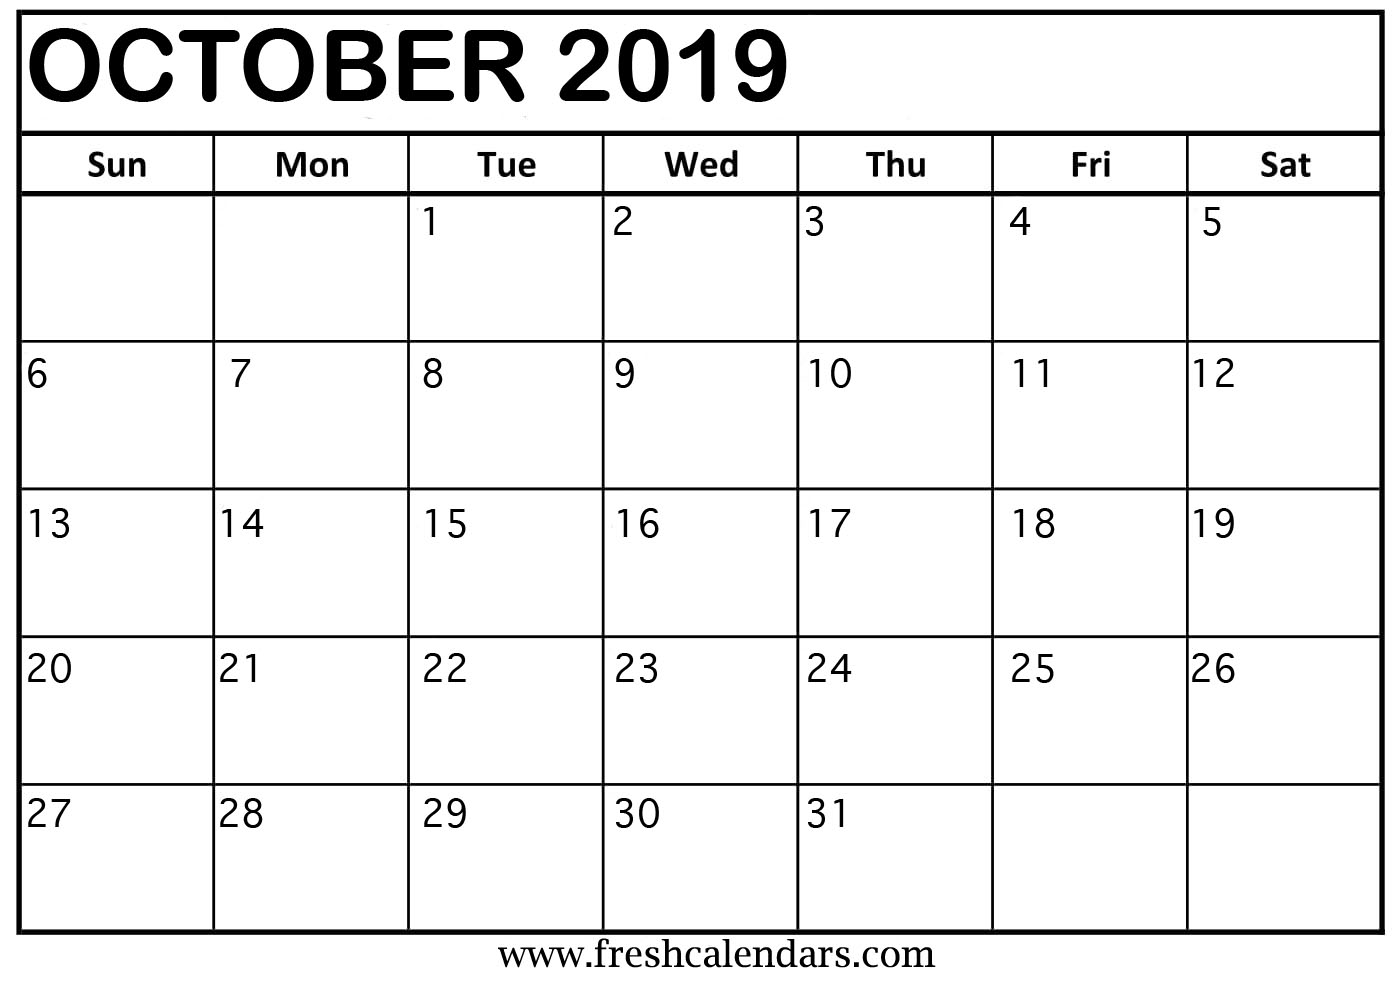 October 2019 Calendar Templates Online